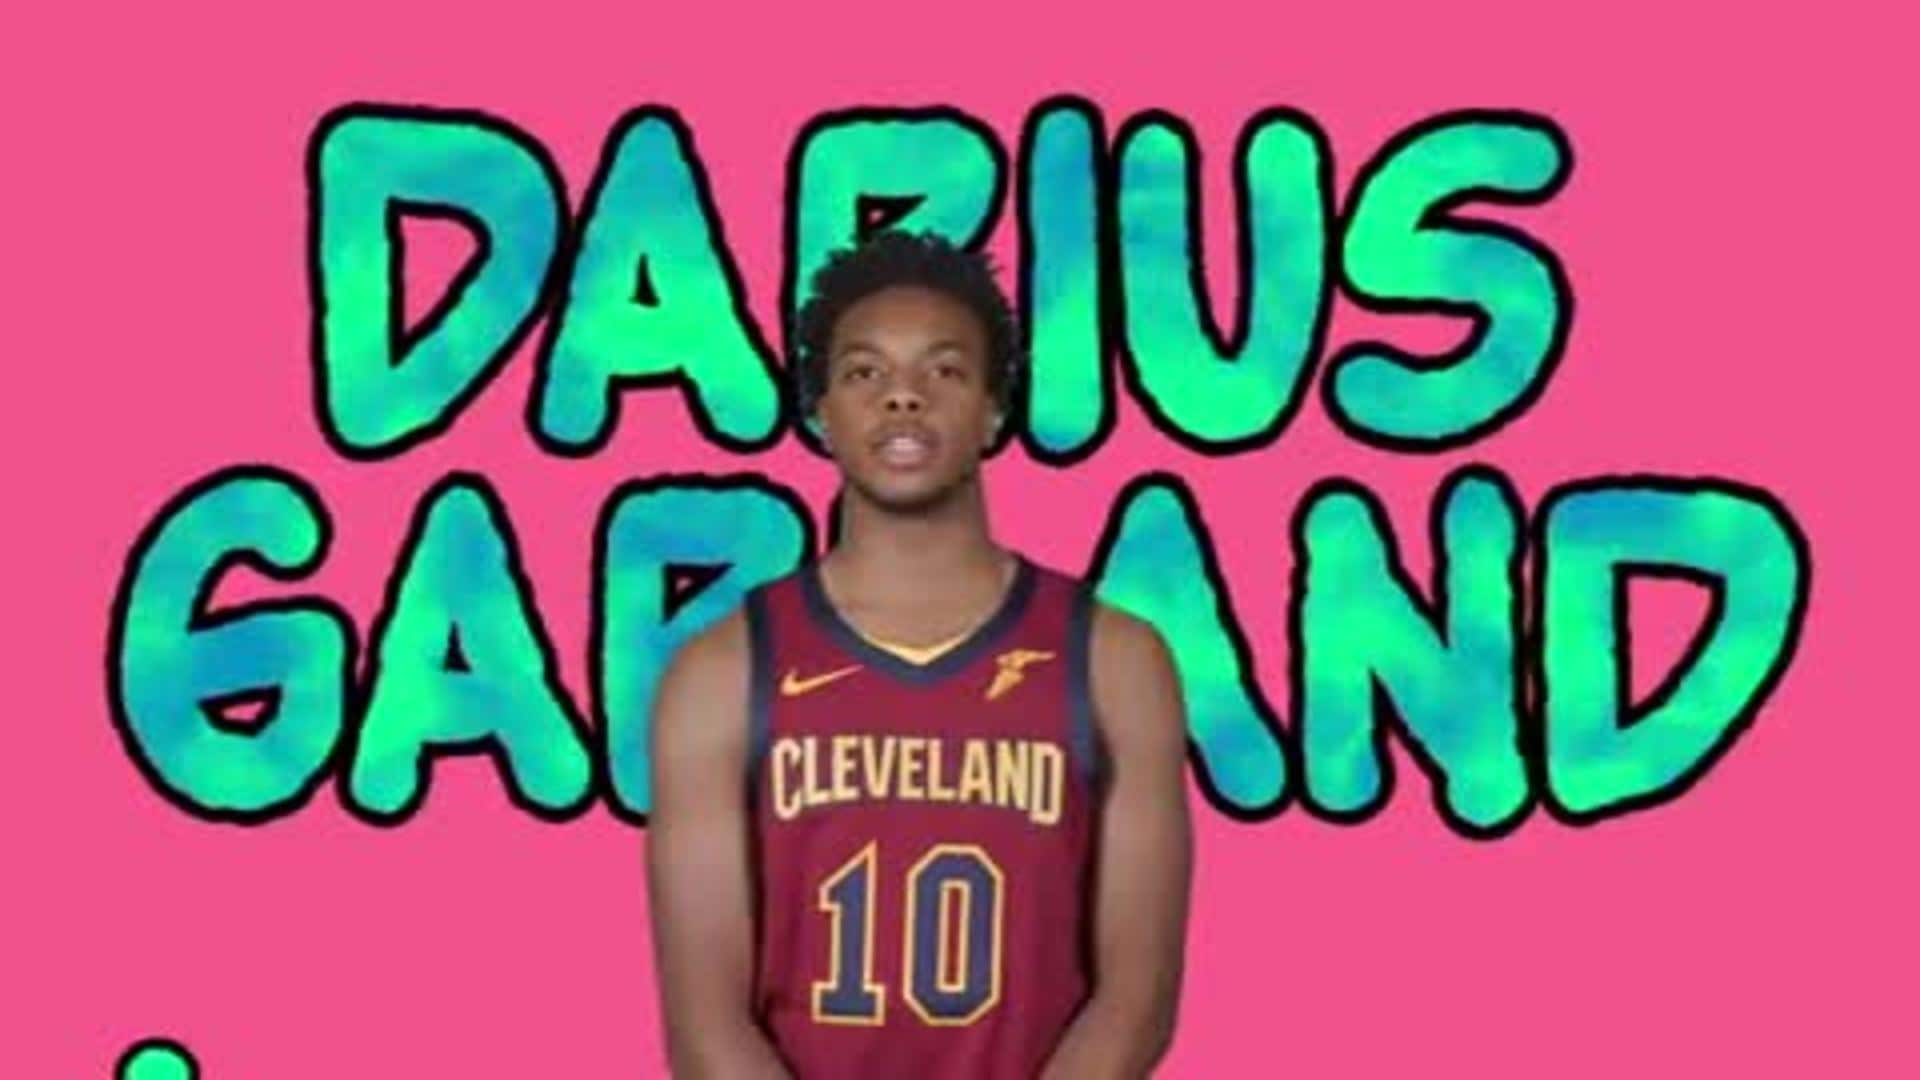 Get to Know - Darius Garland